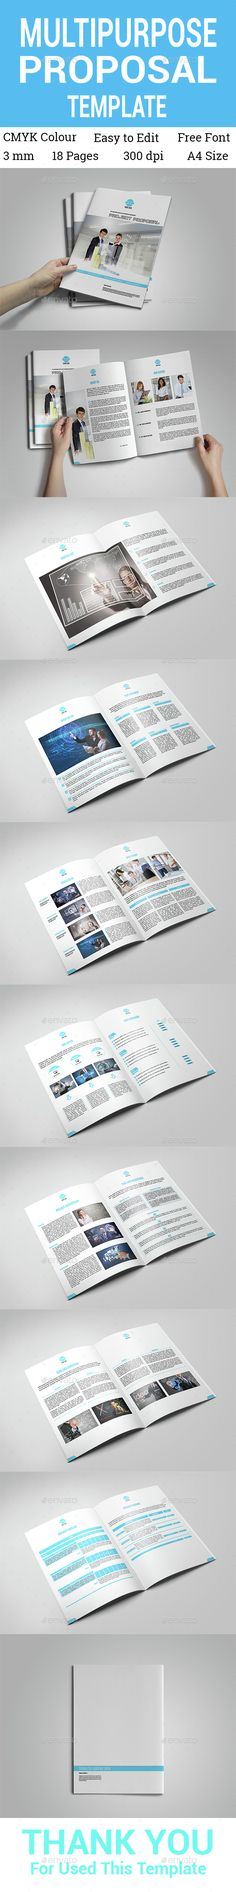 Content Marketing Proposal V2 Marketing proposal, Proposal - best proposal templates